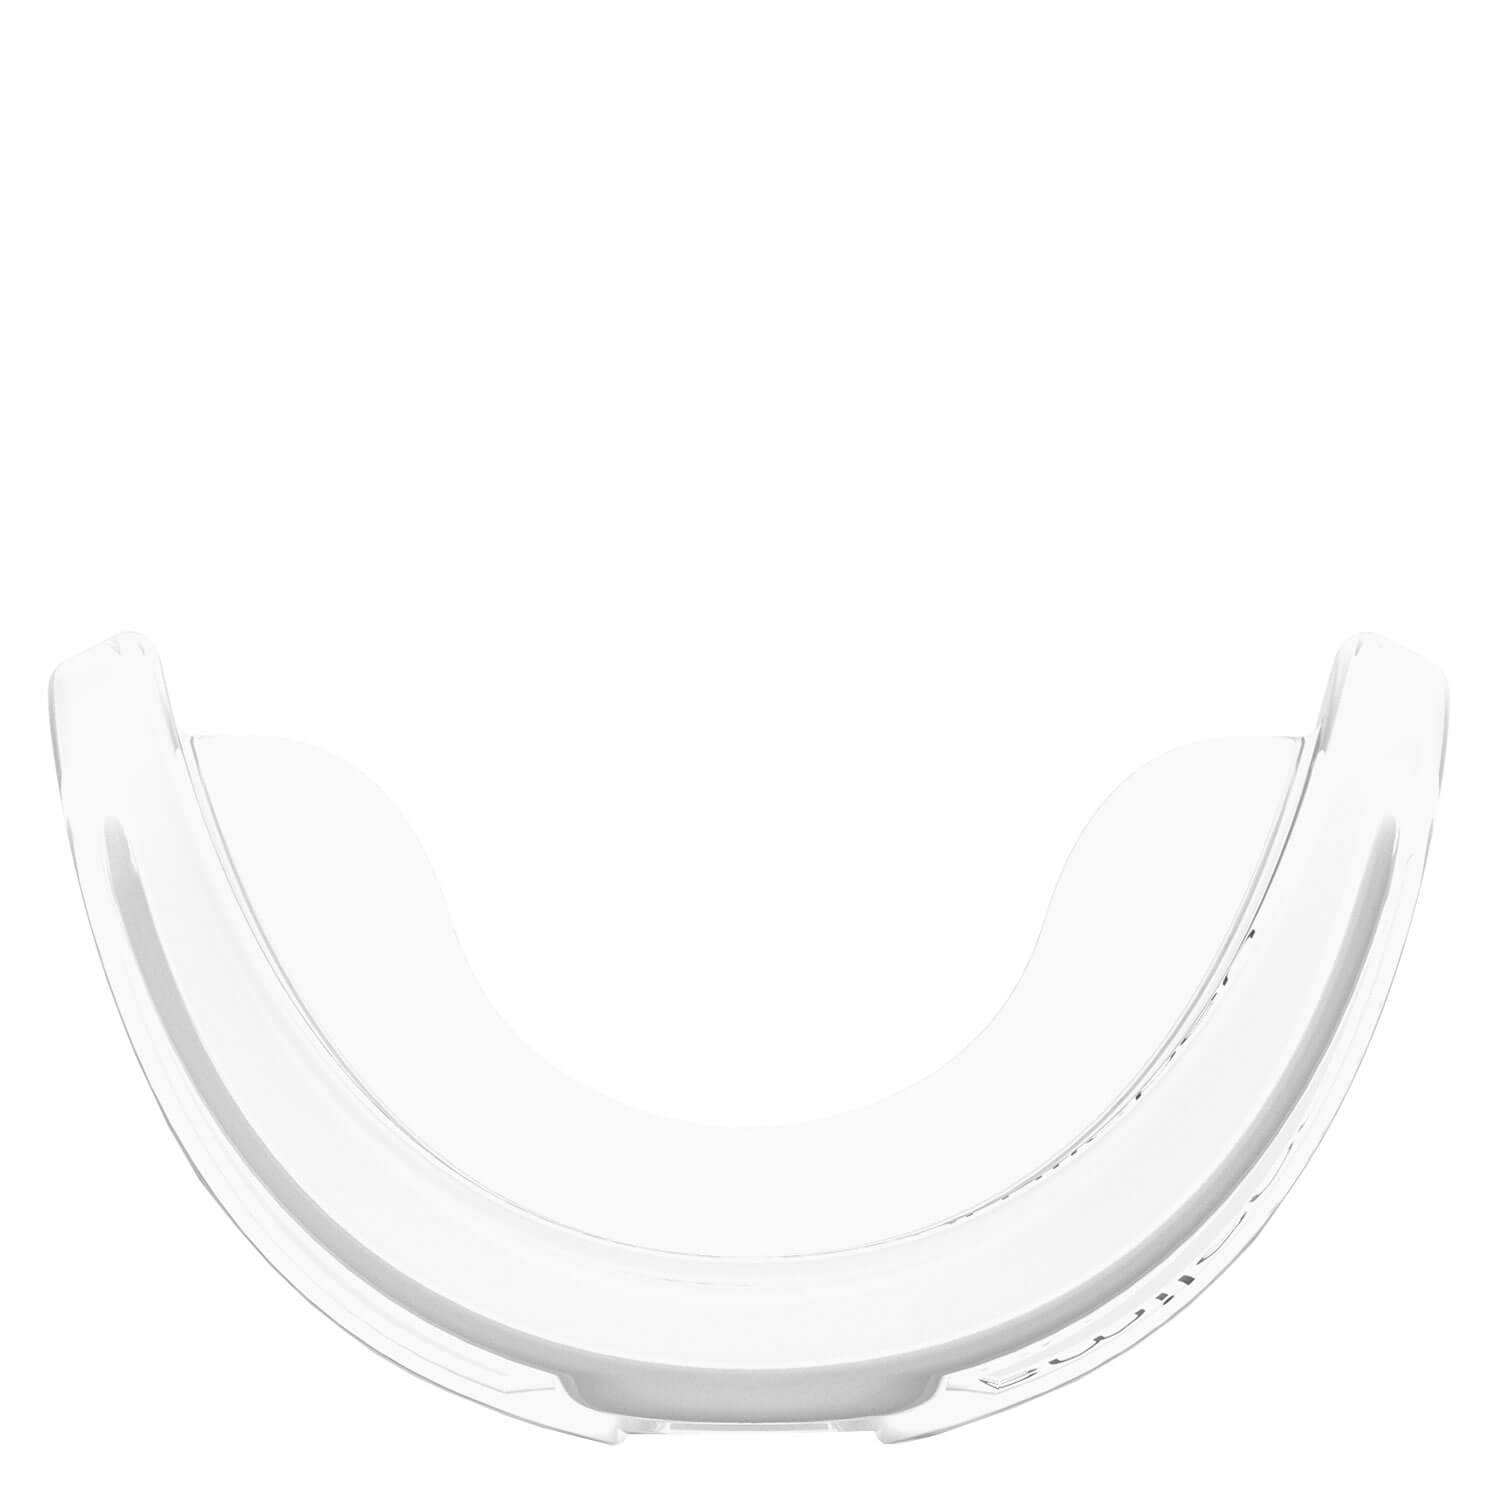 smilepen - Whitening Tray